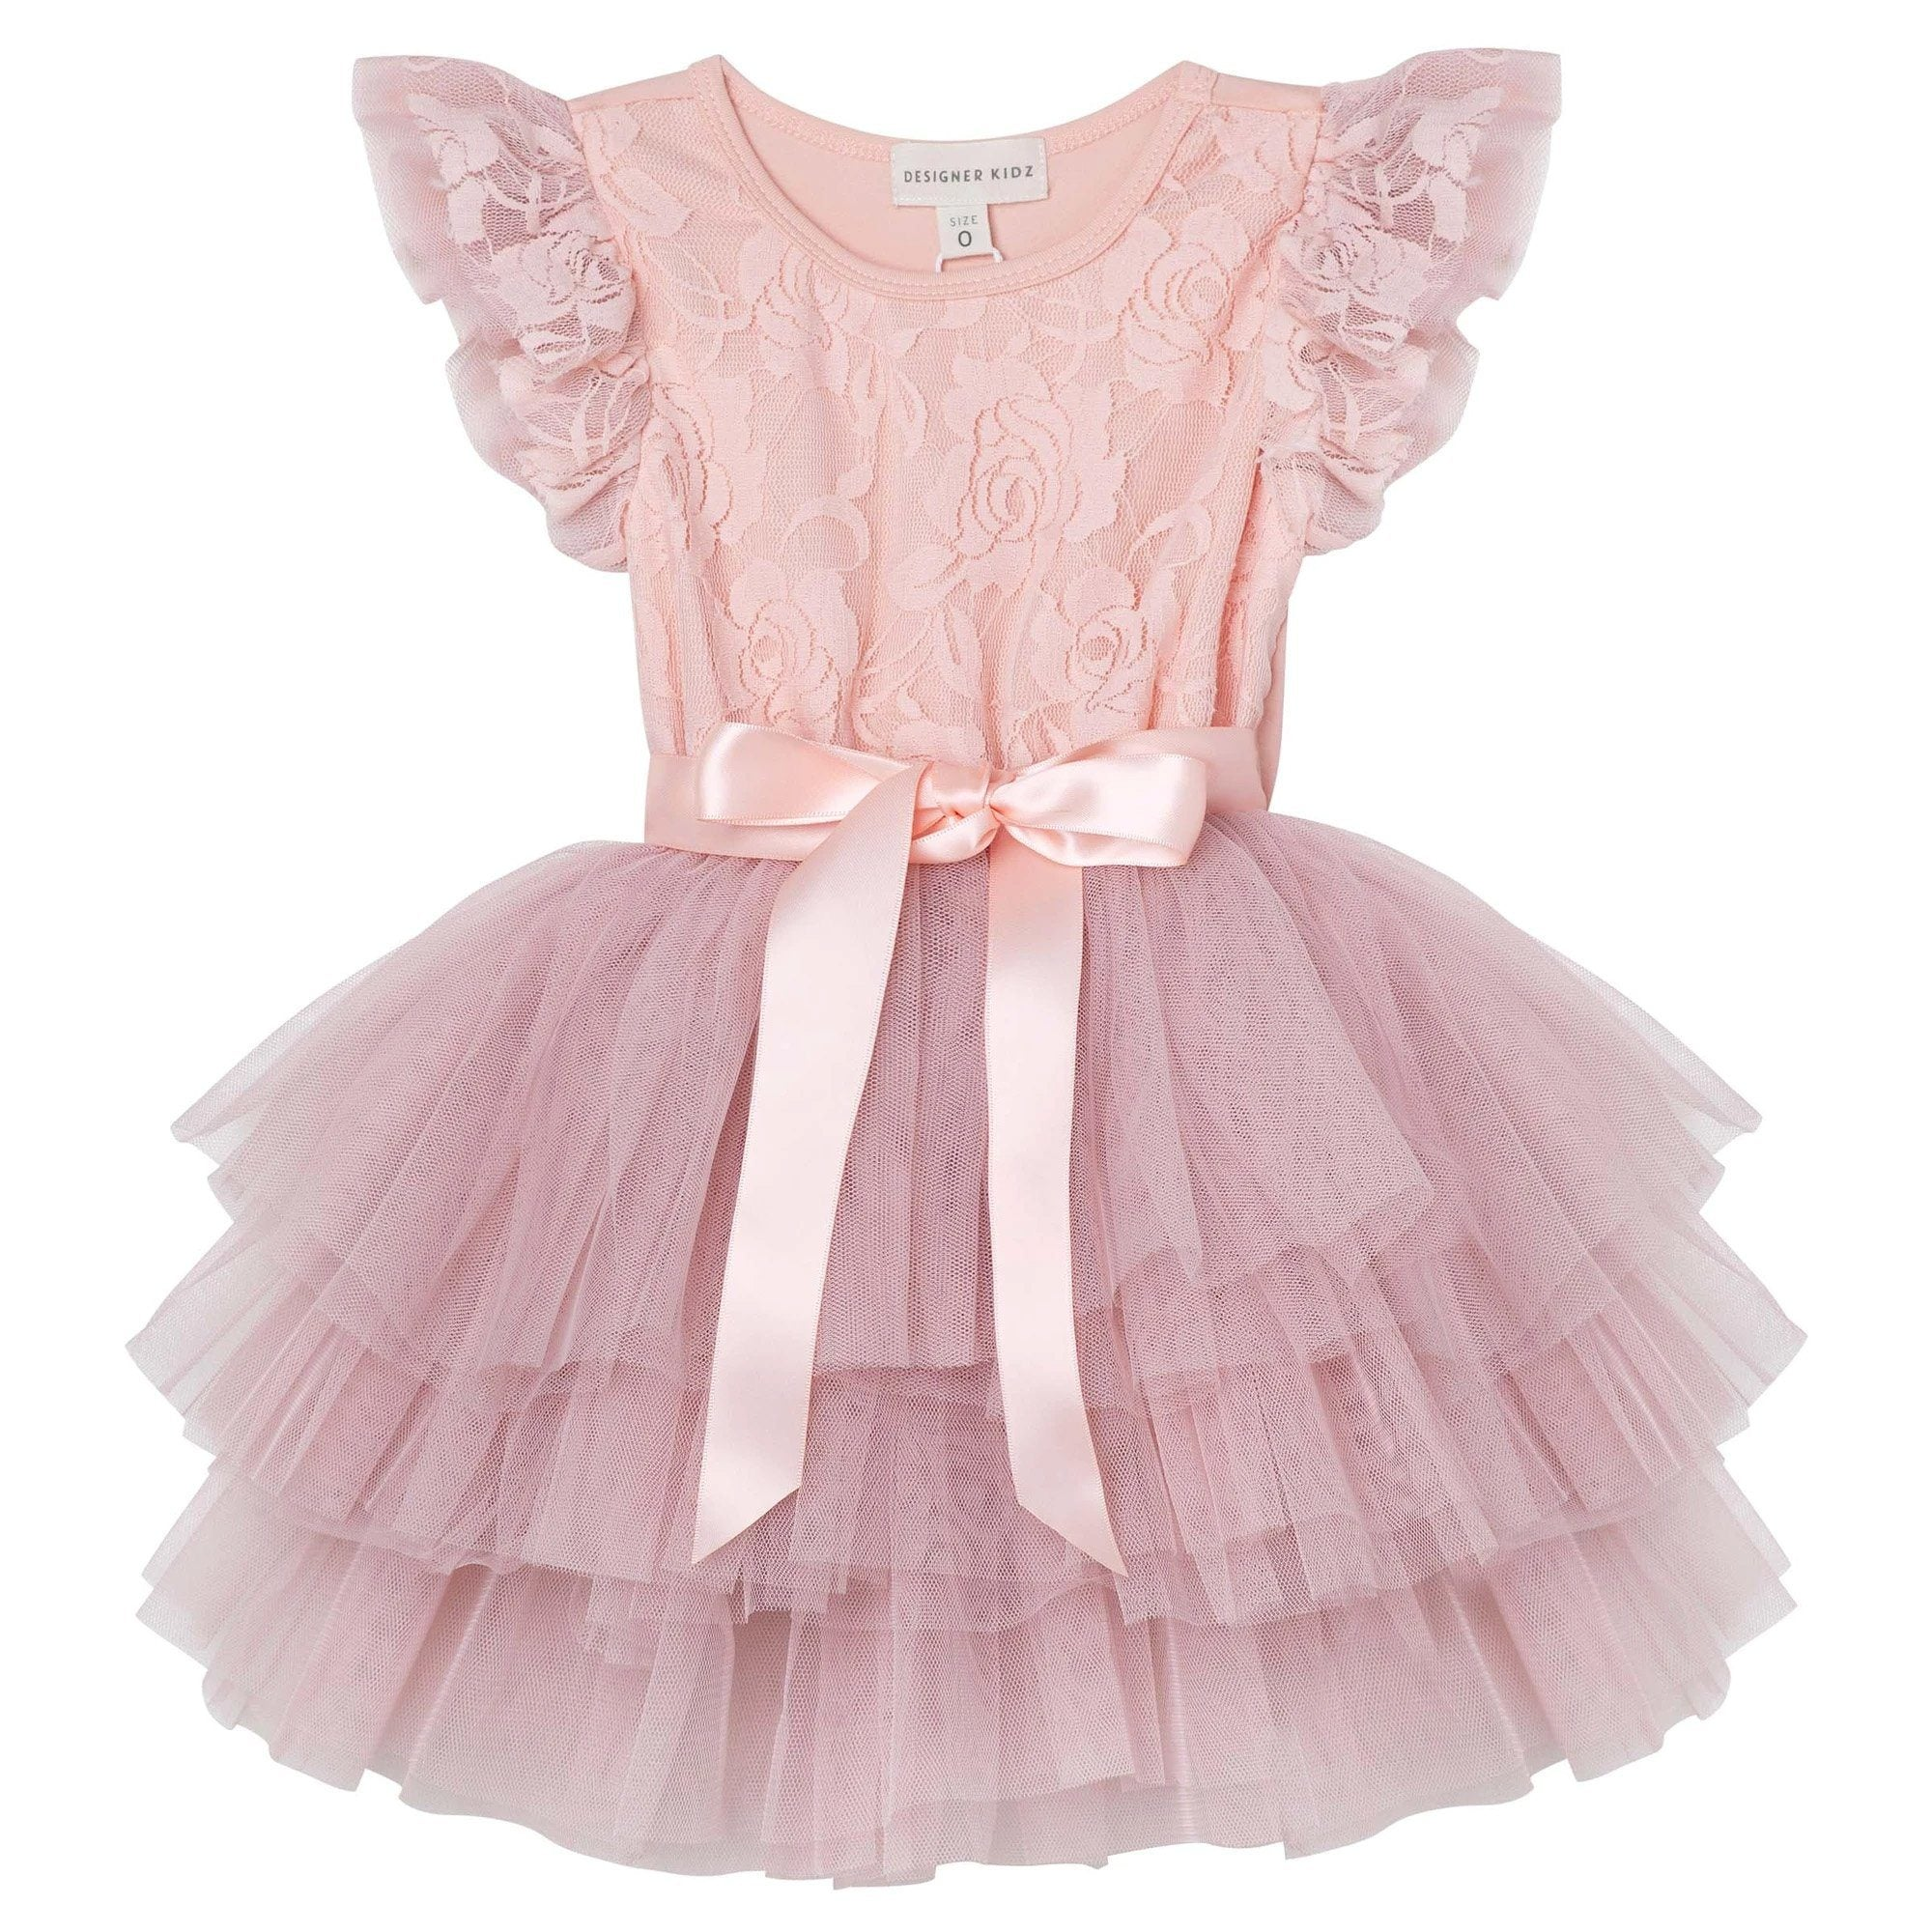 My First Lace Tutu Dress (Tea Rose)